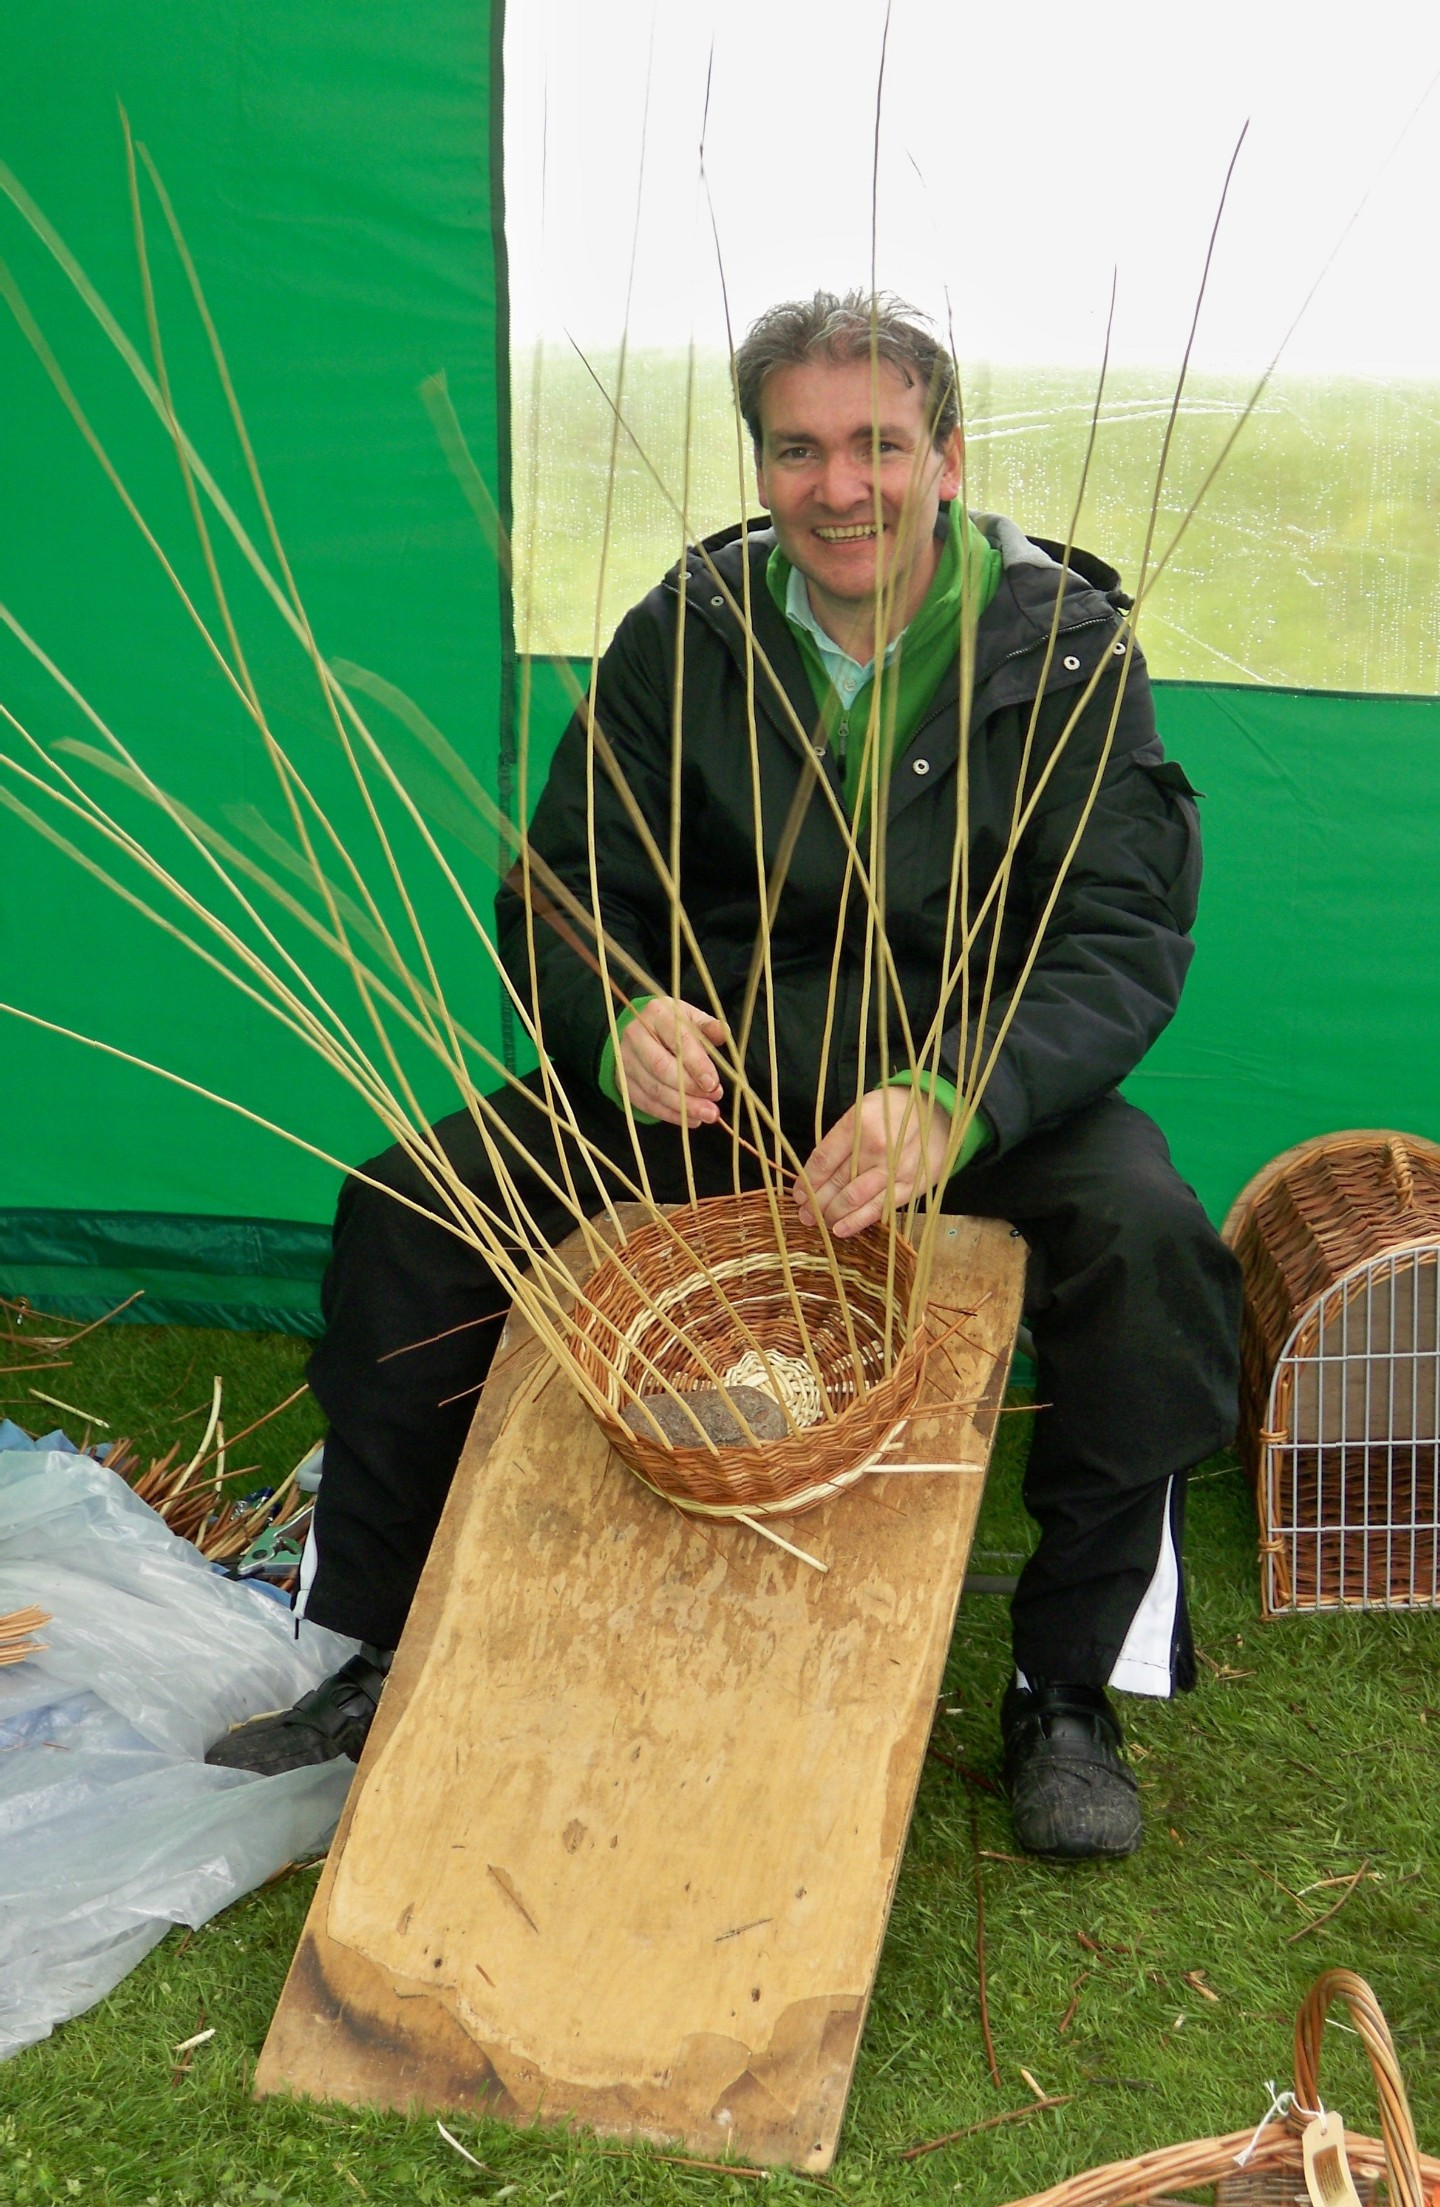 Sussex Willow Baskets